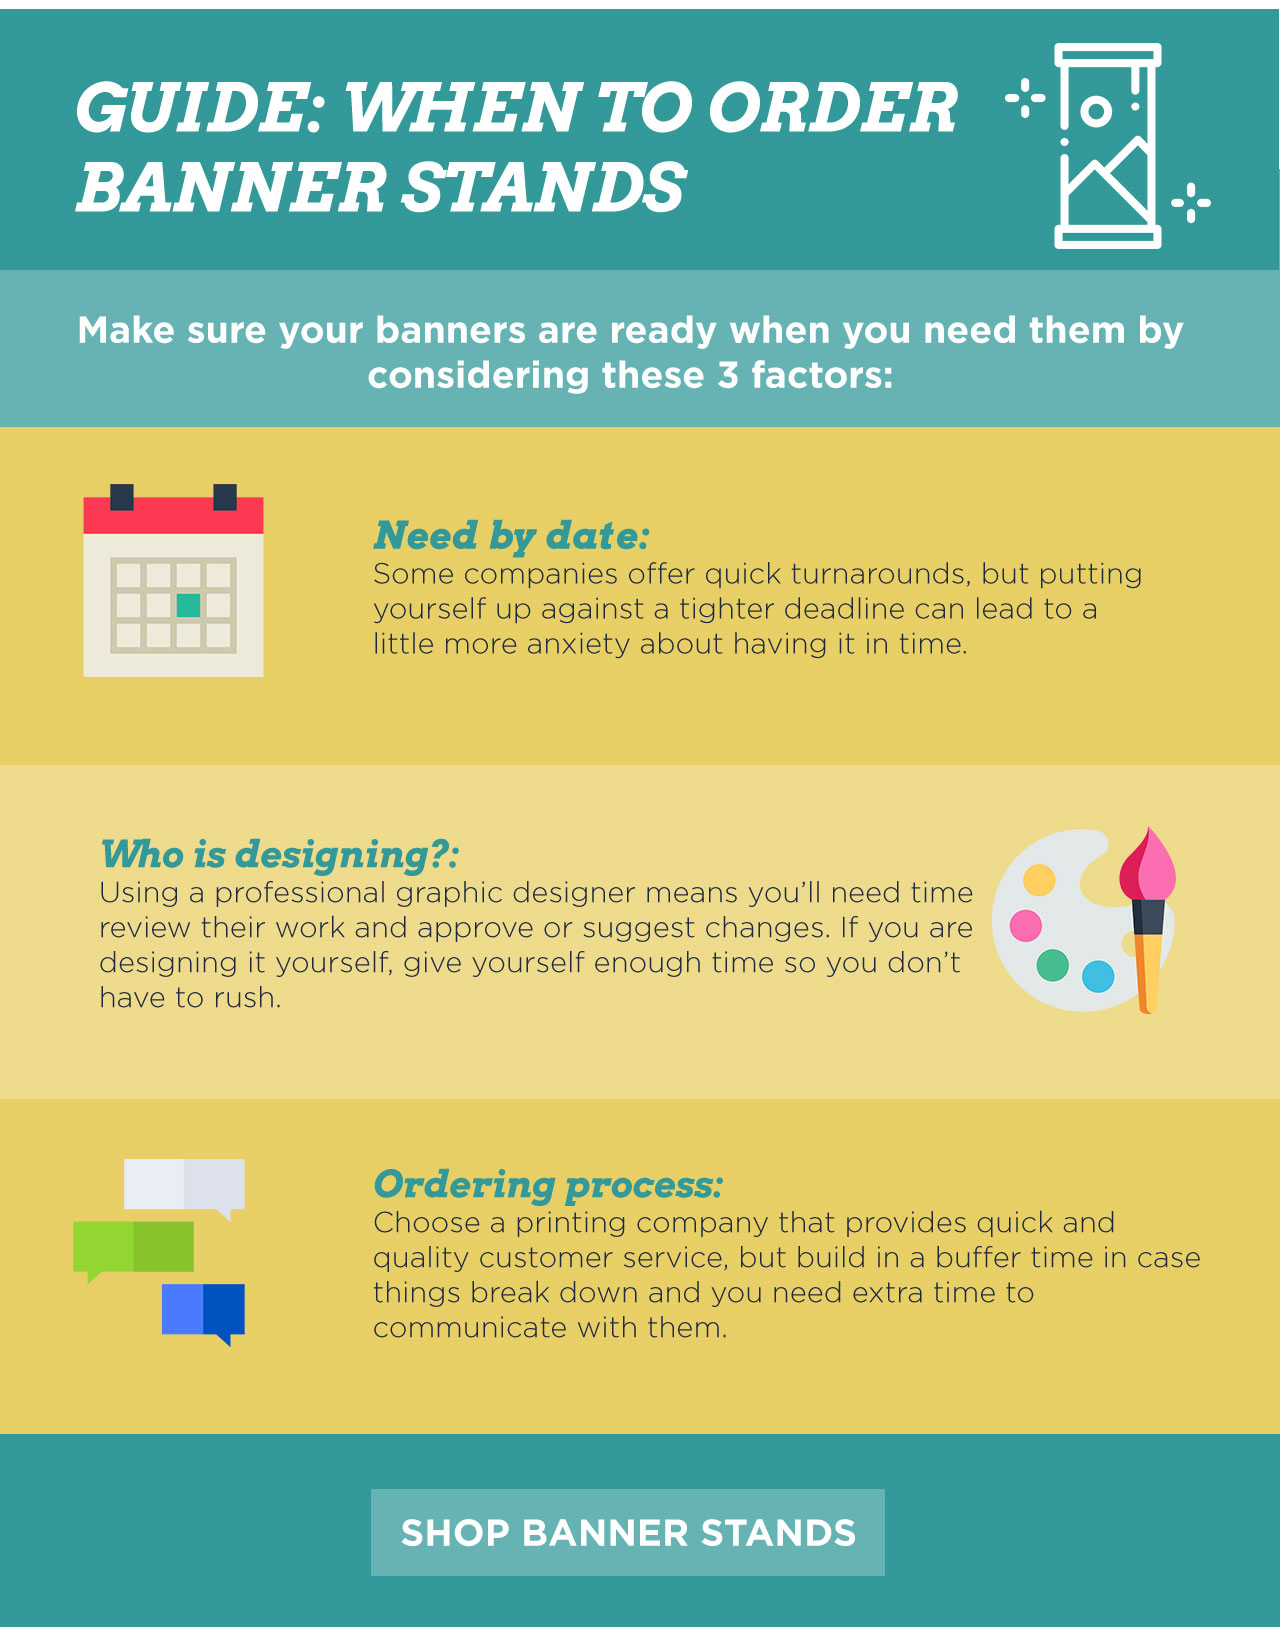 GUIDE: WHEN TO ORDER BANNER STANDS